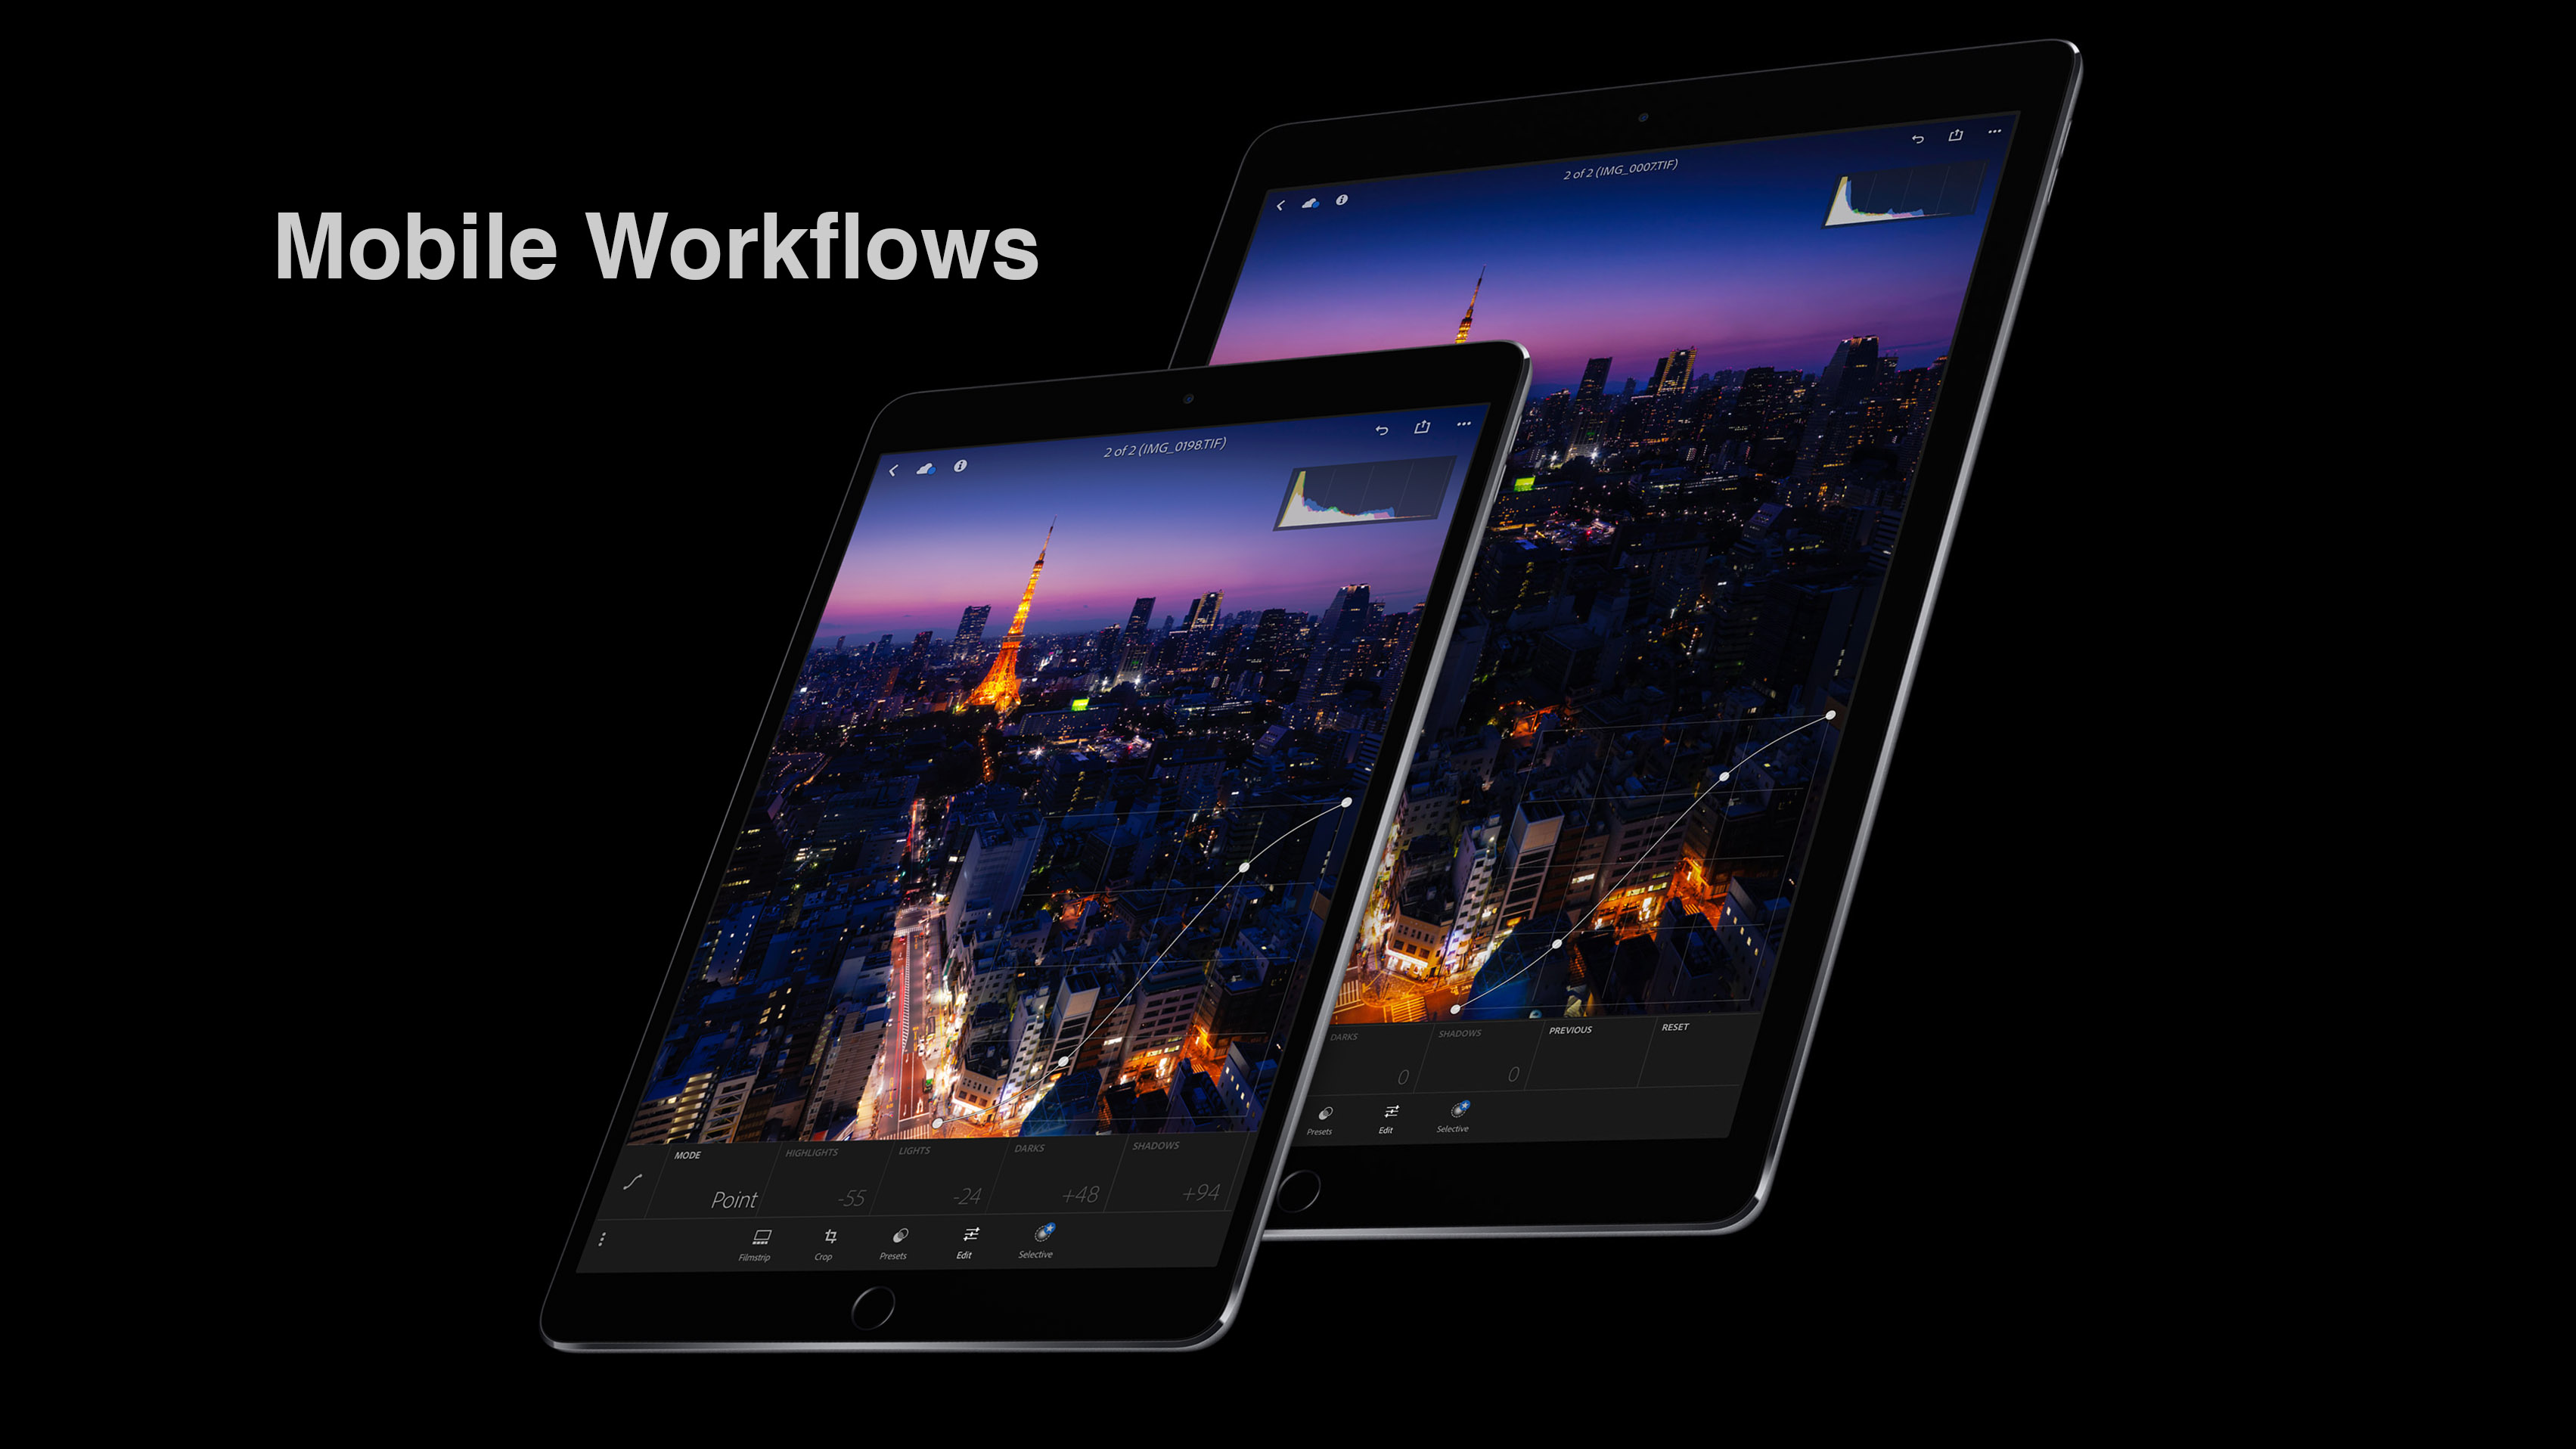 iPad Pro - A Mobile Photographic Workflow - Mark Galer